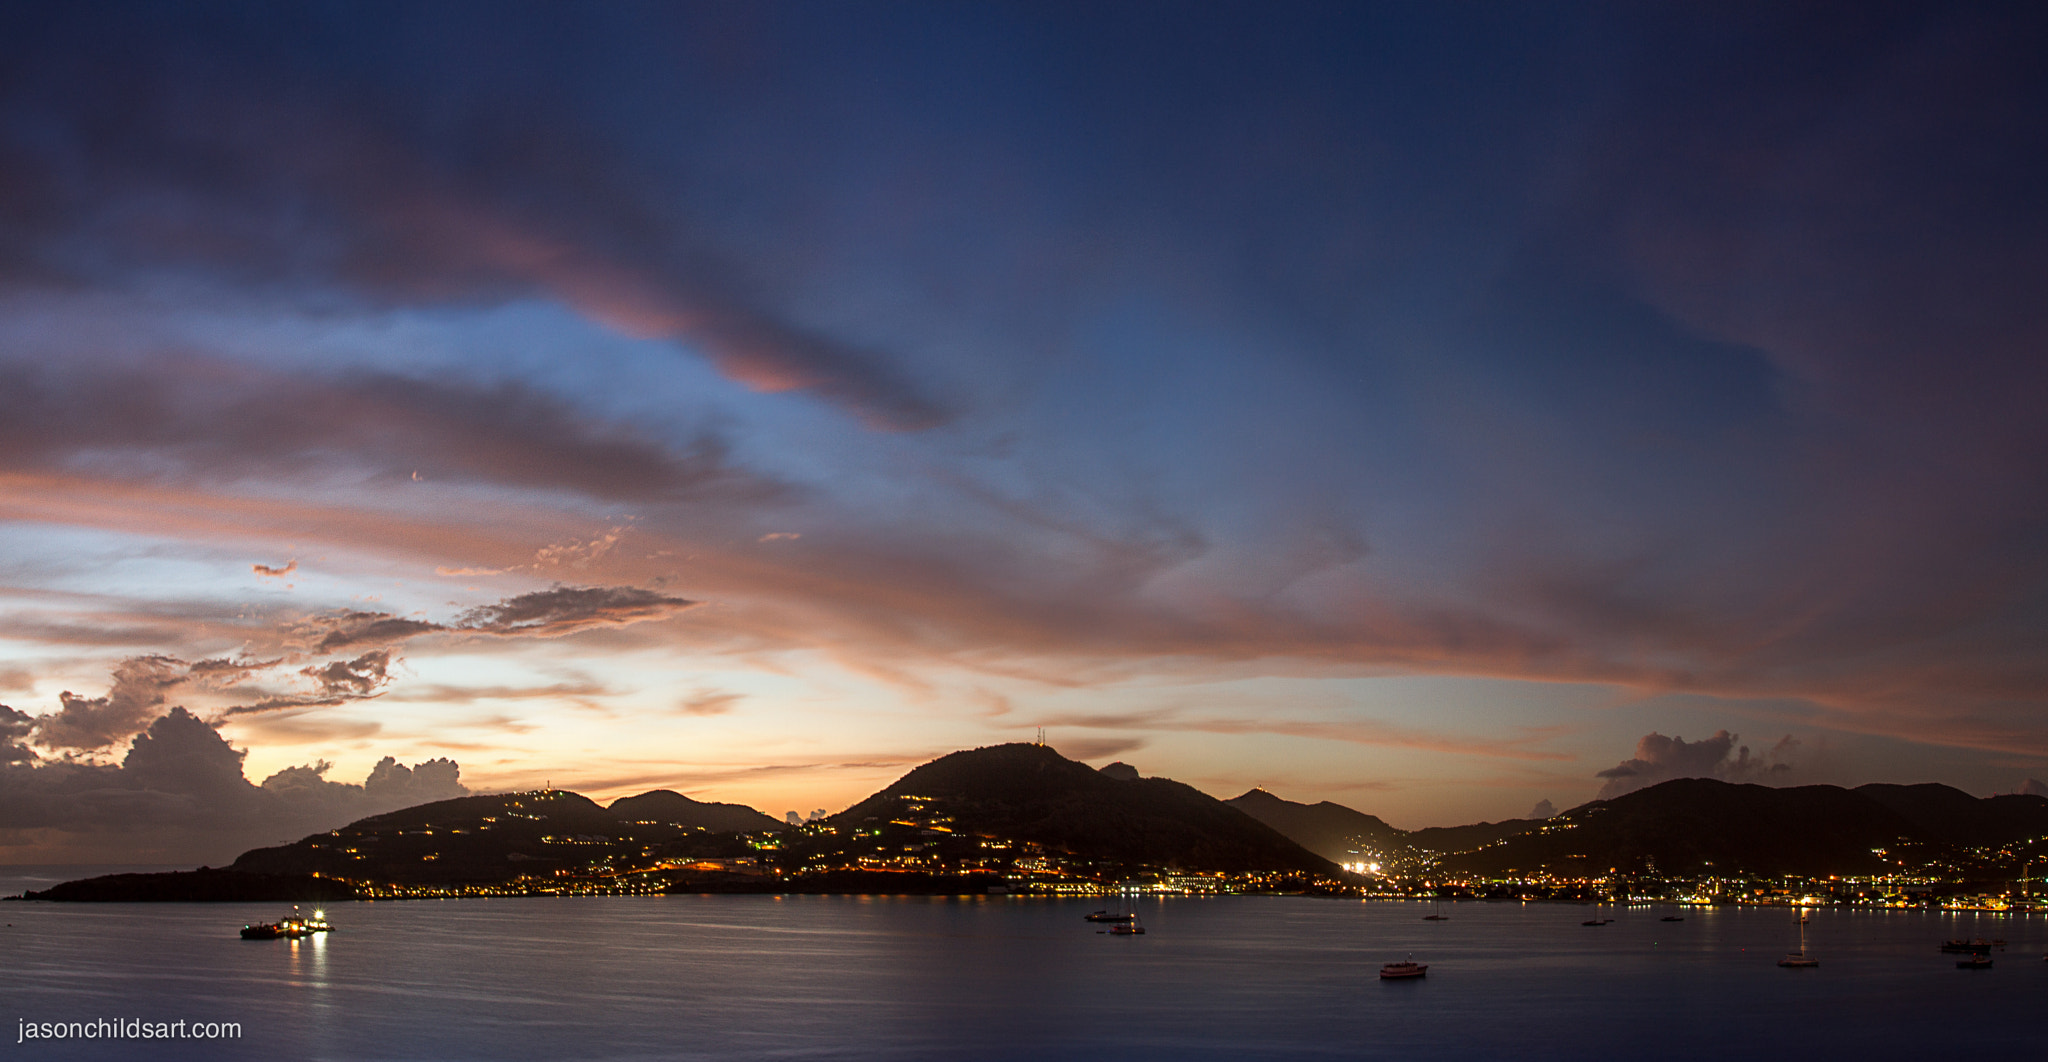 Photograph St. Martin at Dusk by Jason Childs on 500px